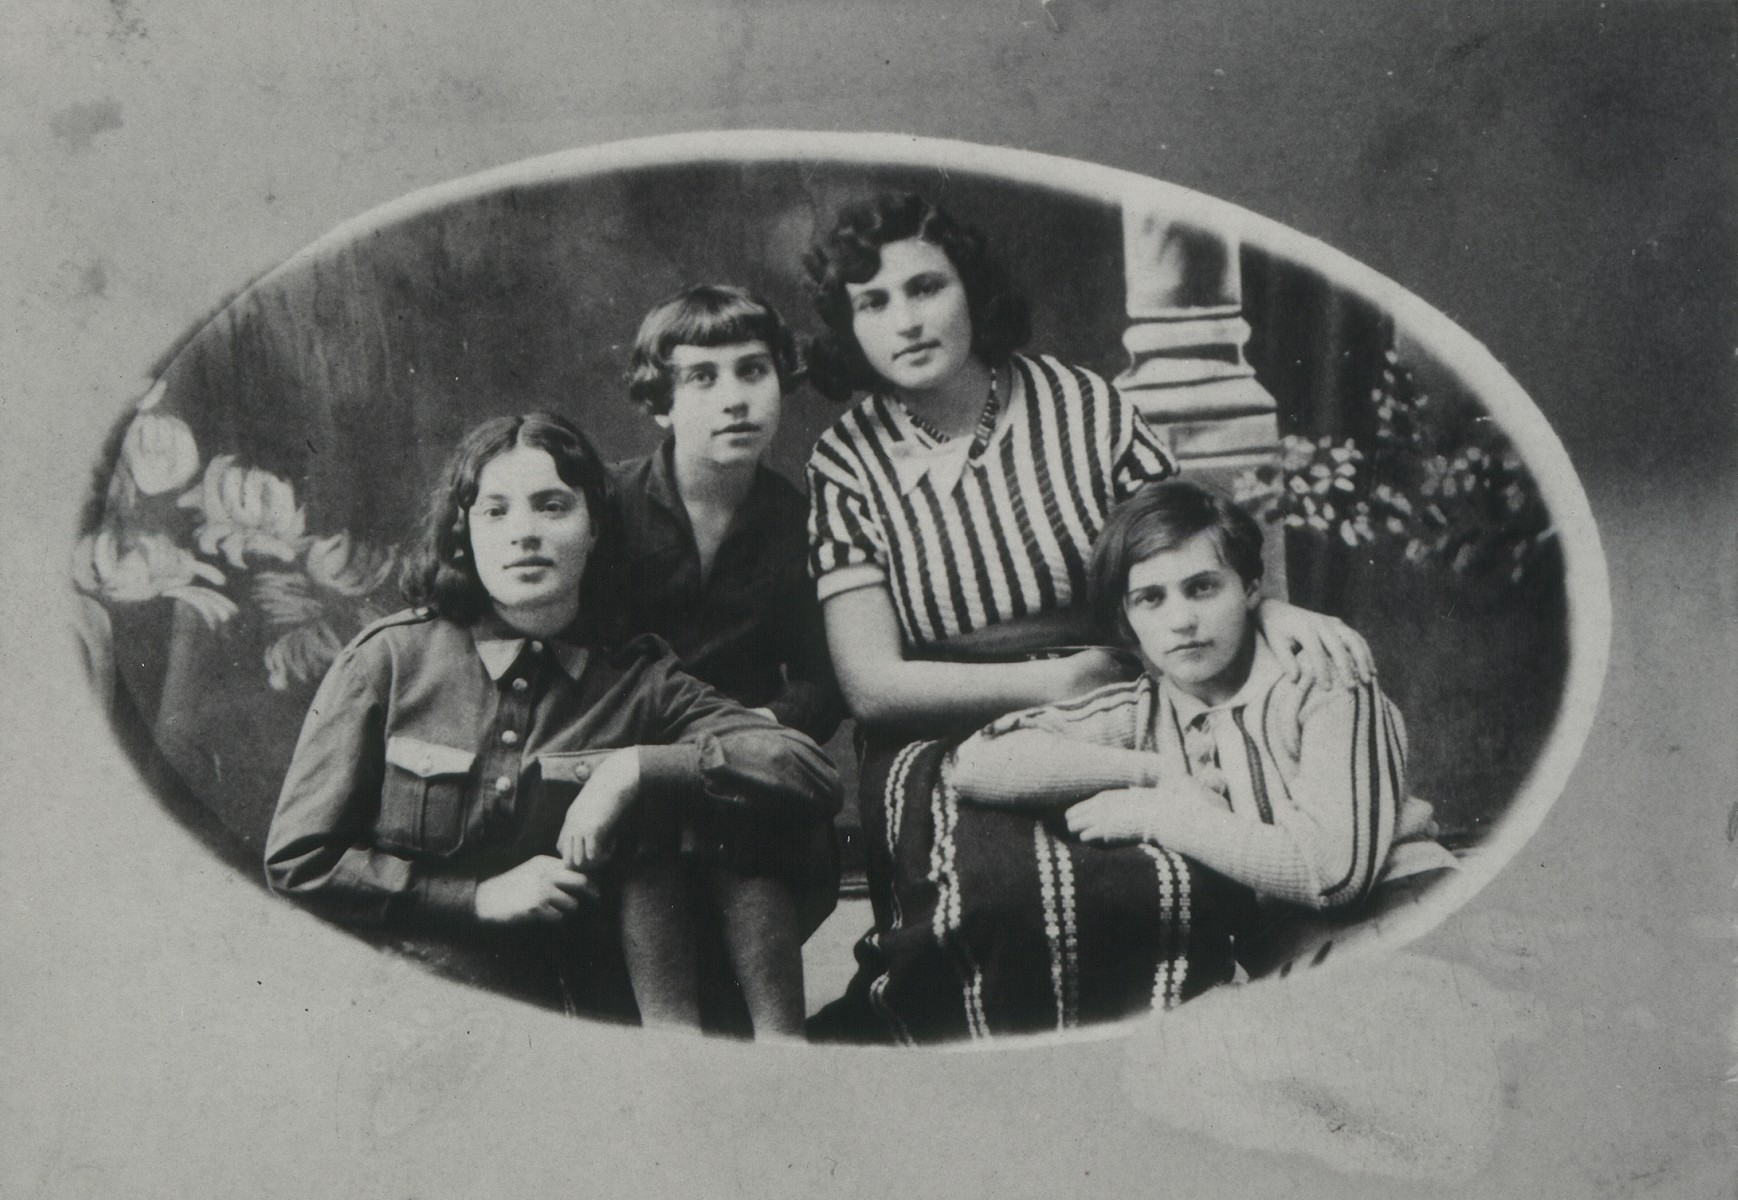 Studio portrait of the Edelstein family.  Top row, right to left: two cousins, Freedah Edelstein and Liebaleh Belicki; leaning on her cousin Rochella Belicki, and sitting on the left is Batsheva Edelstein, a sister of Freedah. Freedah was born in 1911. She, her husband, and children were murdered in the September 1941 massacre in Eisiskes.  The other three girls were also murdered during the Holocaust. Bat-Shevah was murdered with her fiancee.